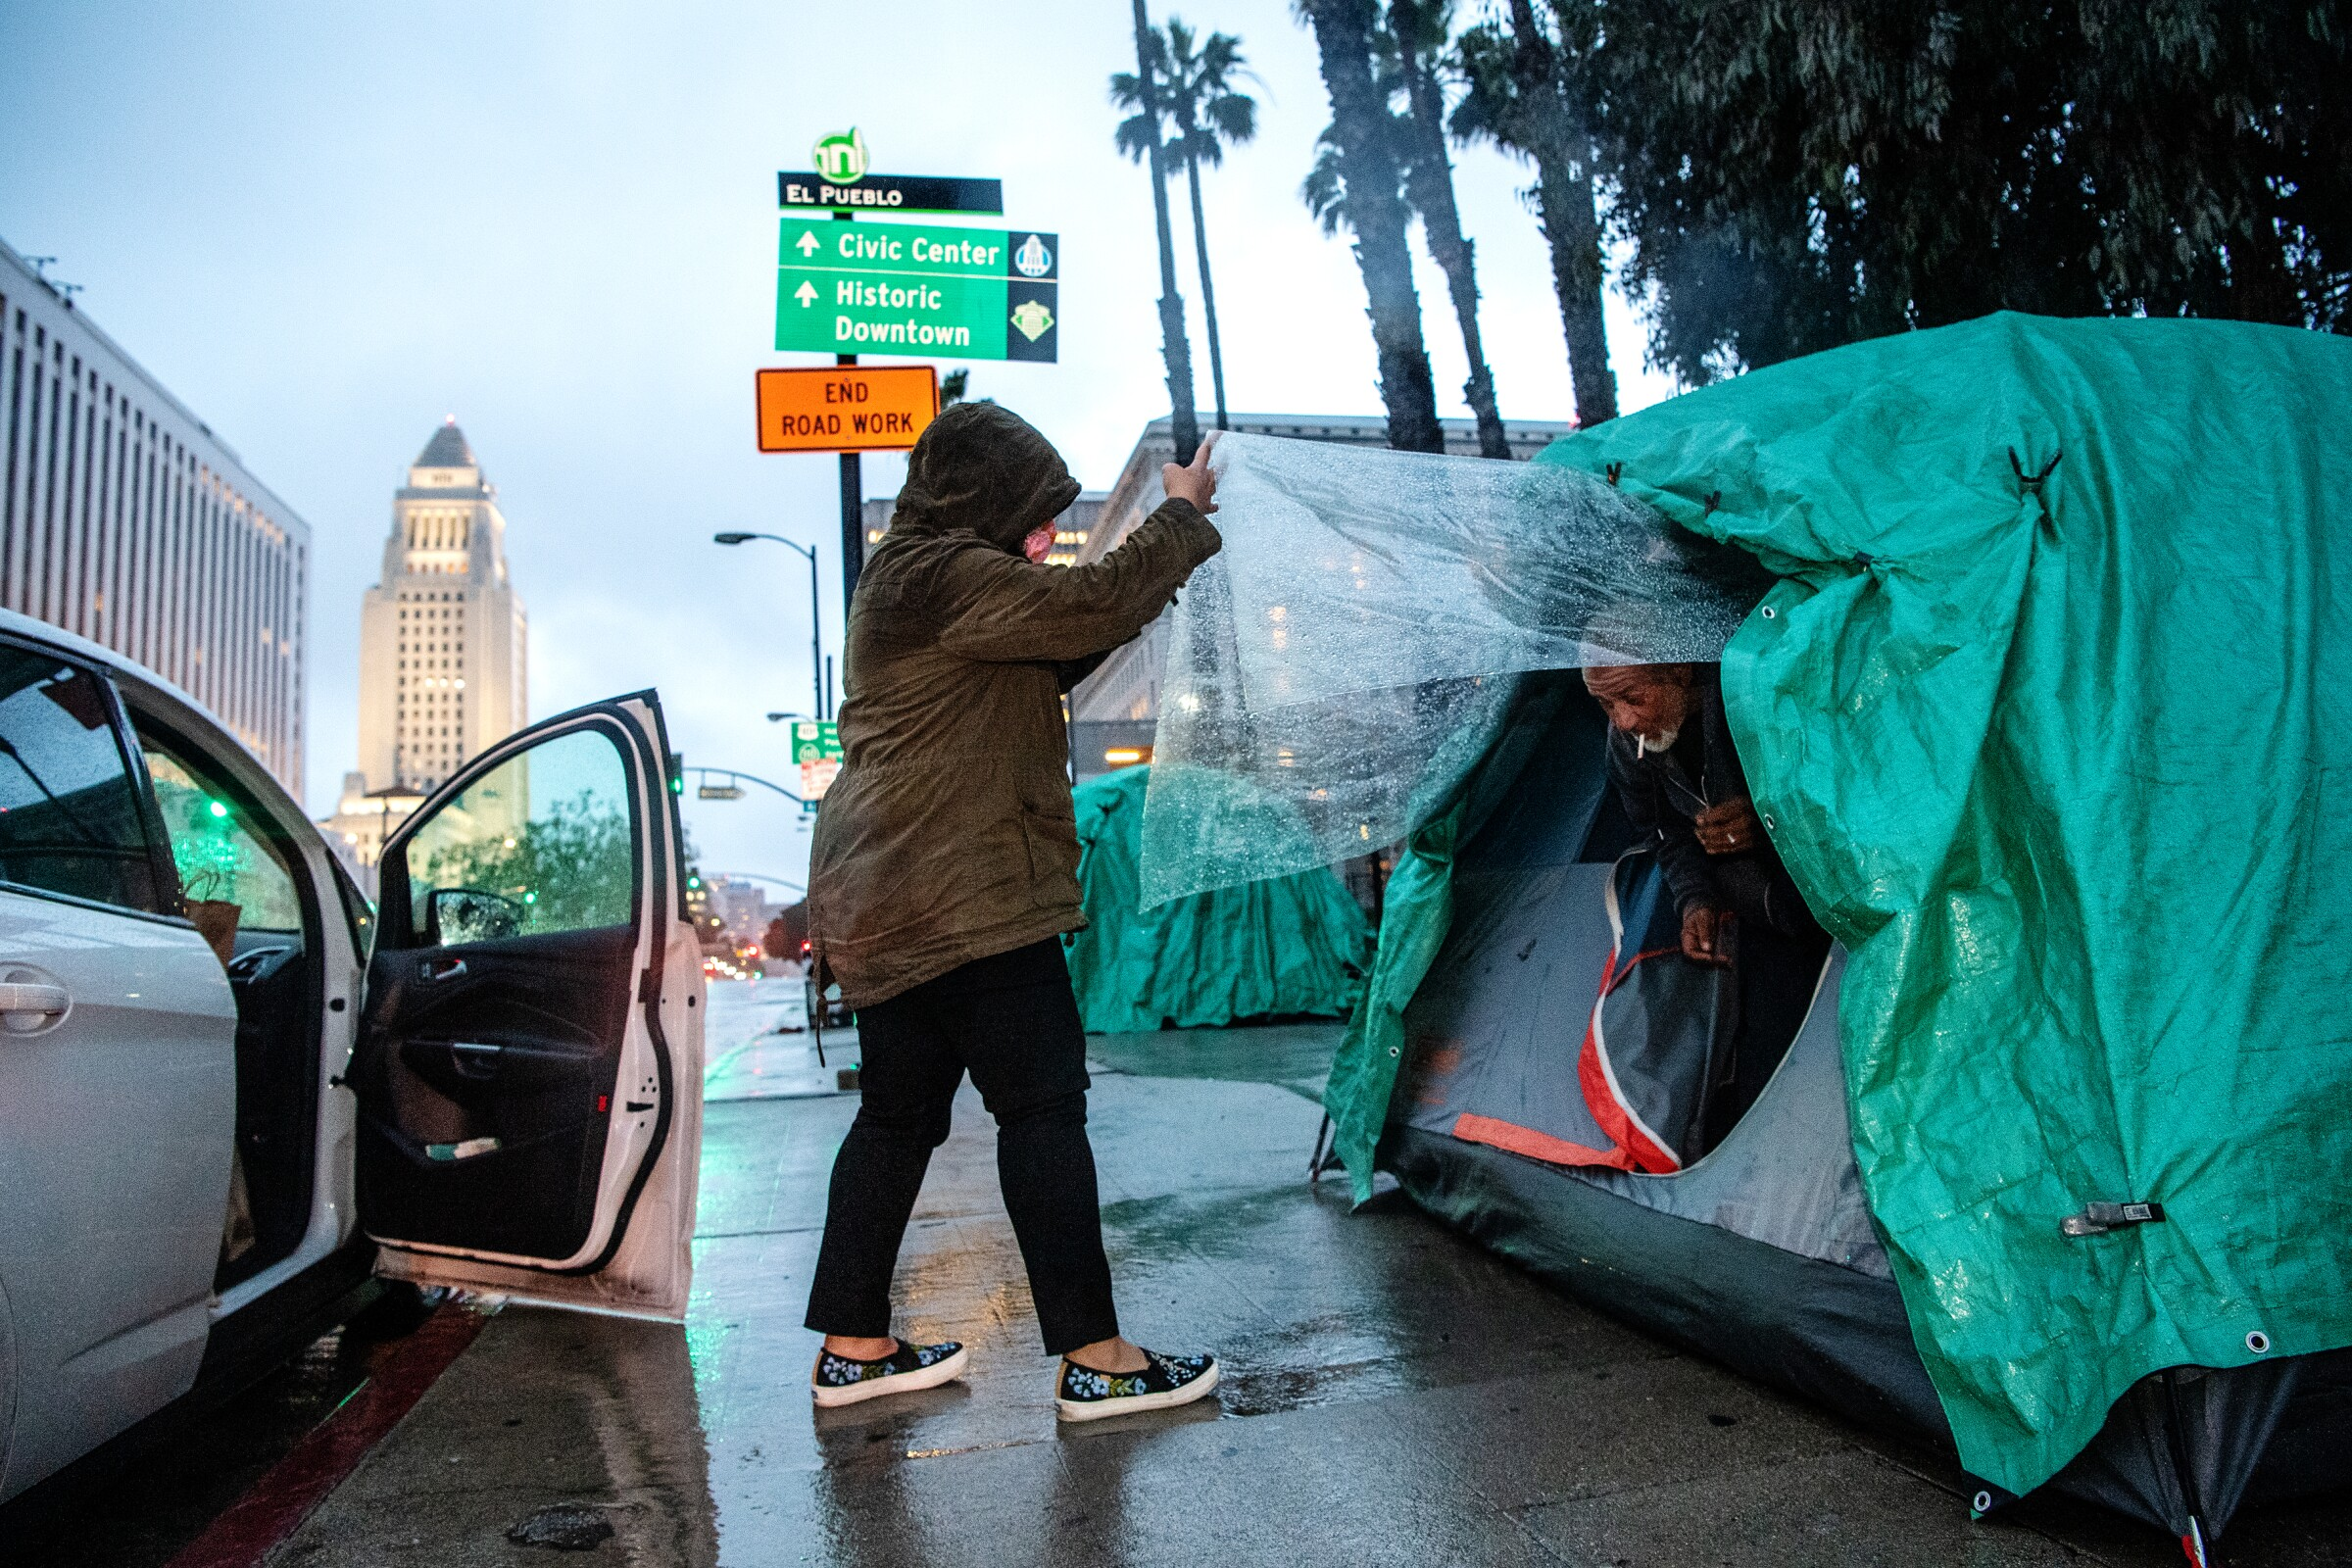 Melissa Acedera distributes meals and supplies to one of her contacts, Harvey, on Olvera Street on a rainy evening in downtown Los Angeles.